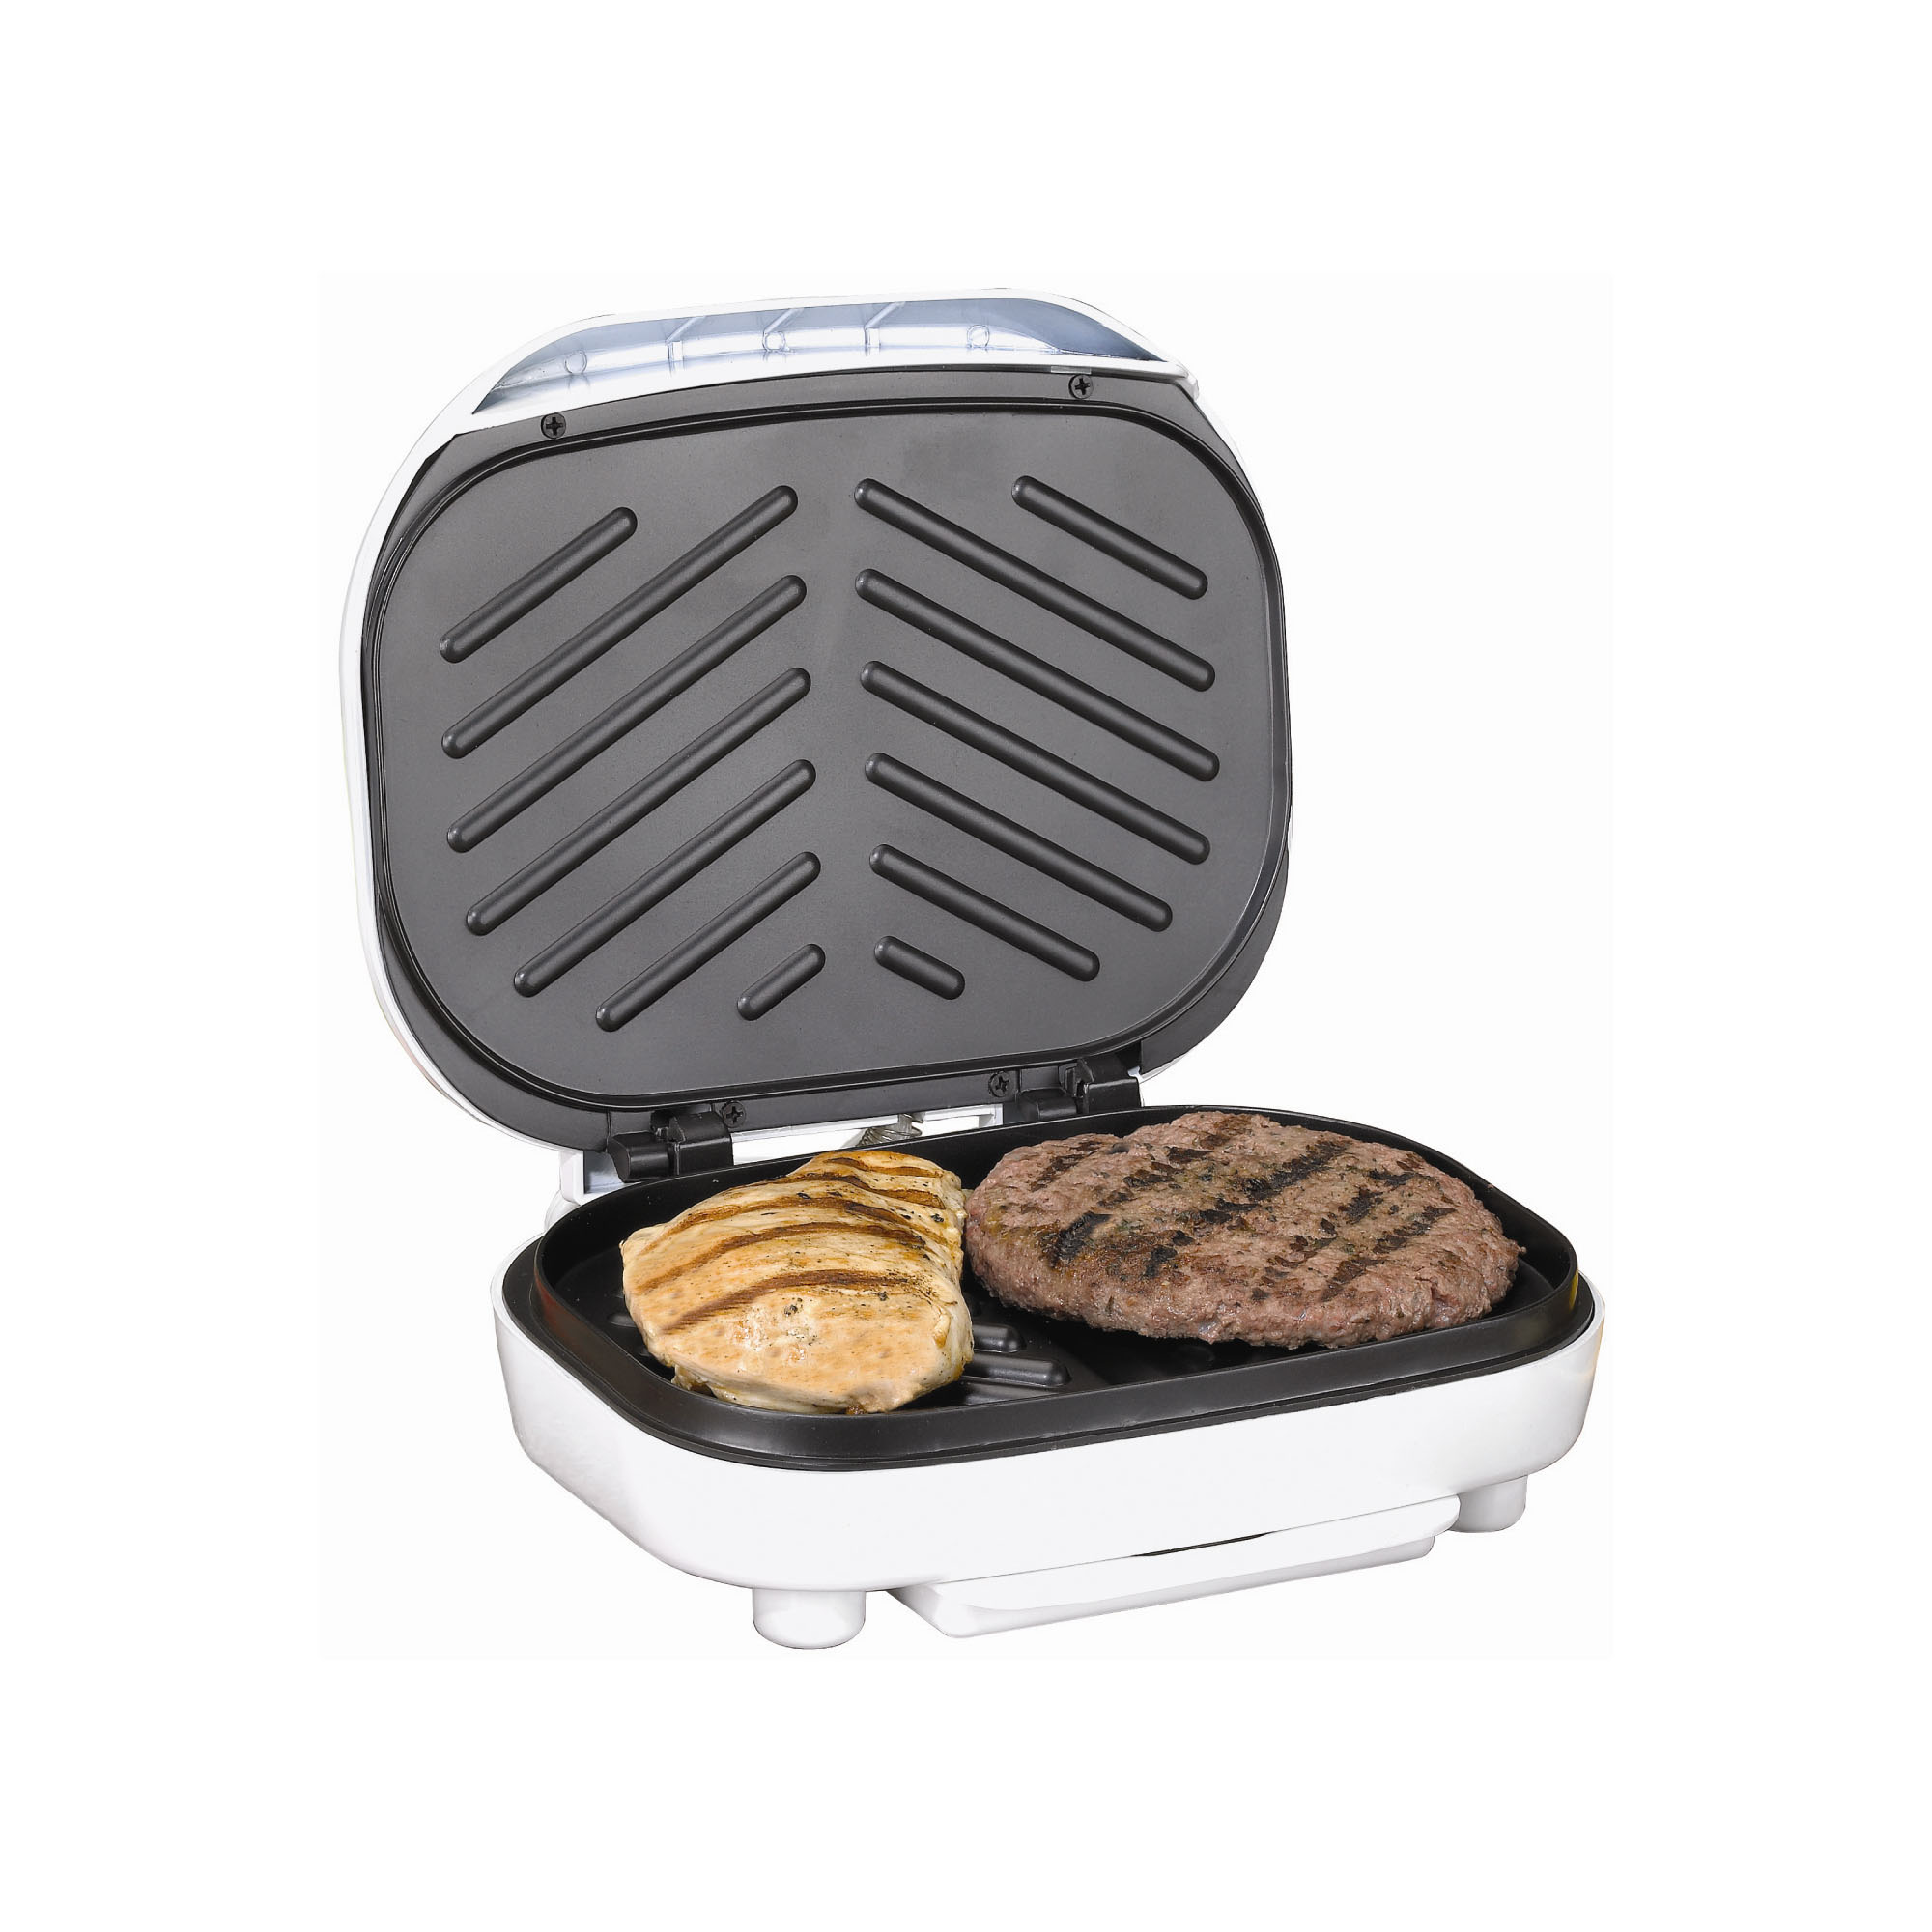 Brentwood TS-605 Electric Contact Grill, 2-Slice Capacity